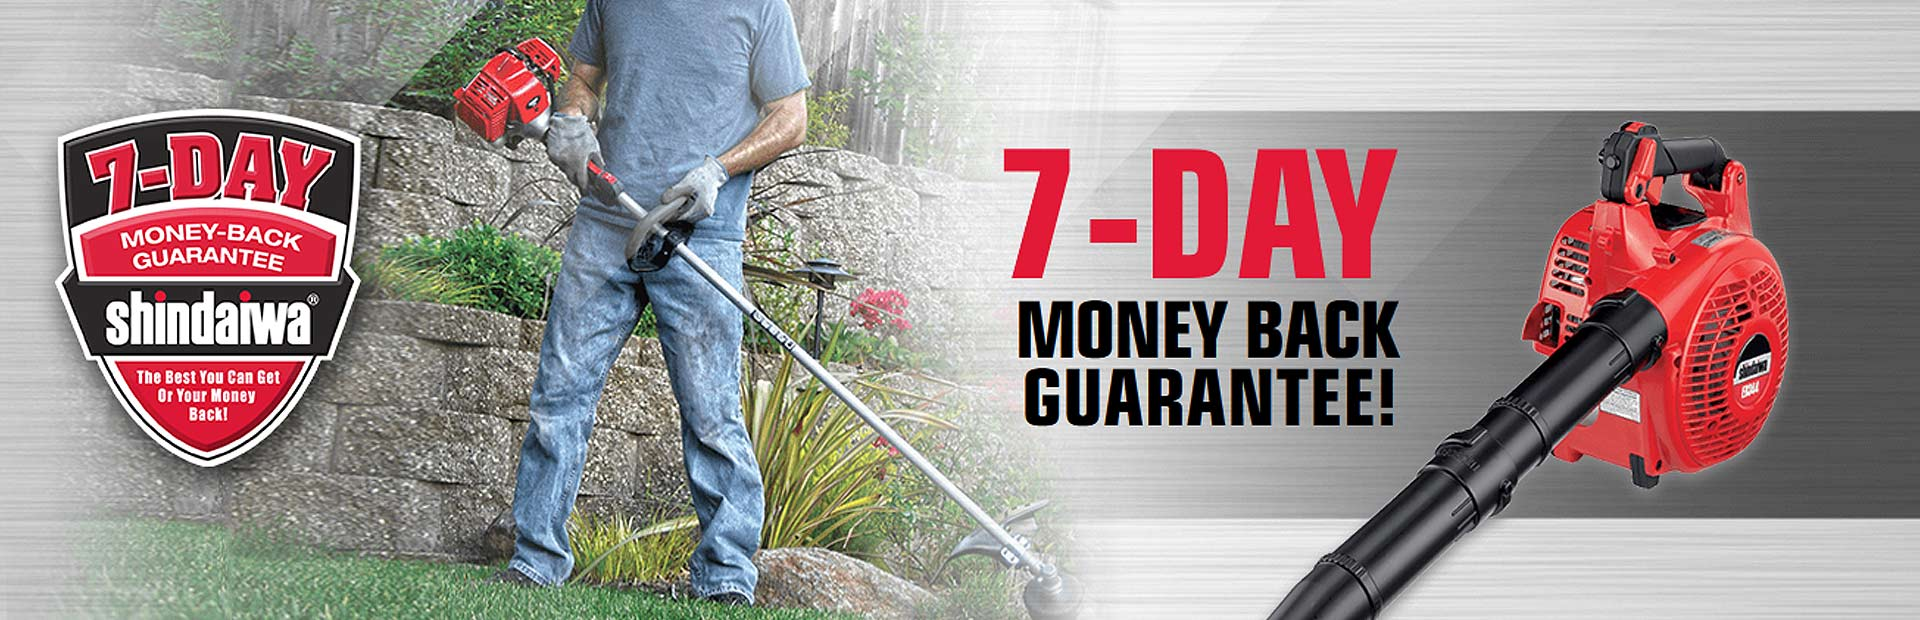 Shindaiwa: 7-Day Money Back Guarantee!